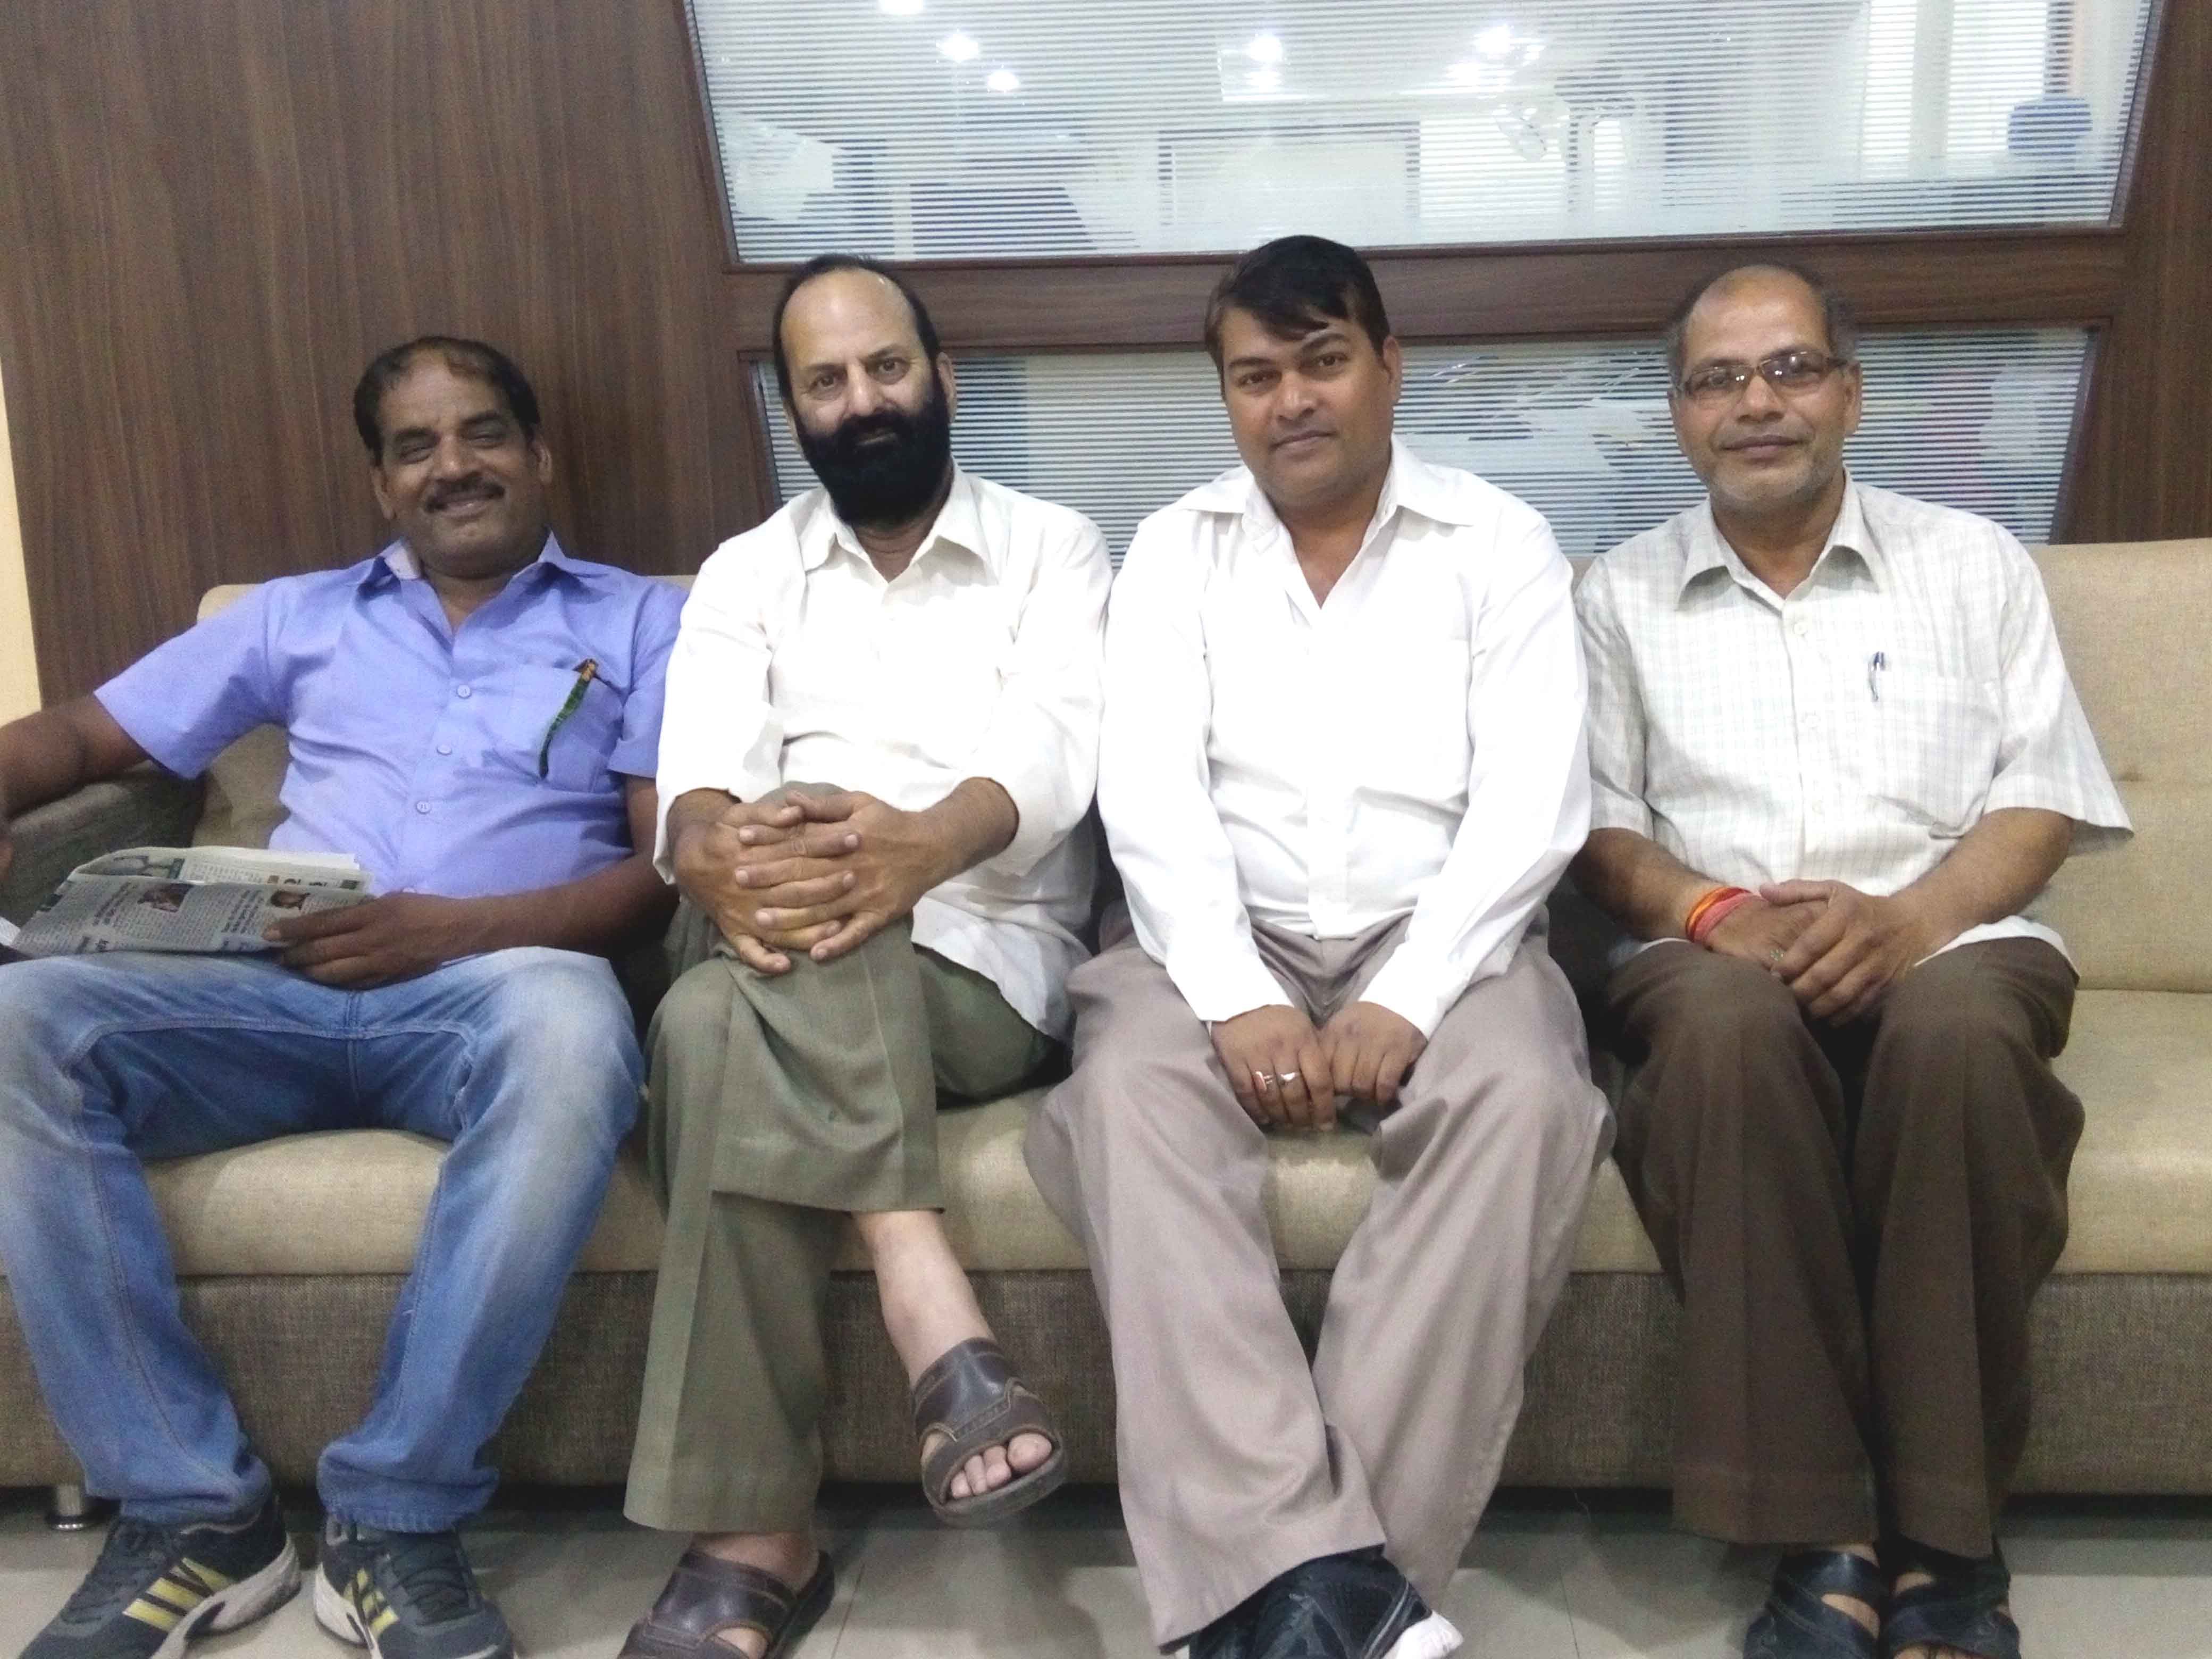 Senior Journalist Mr Raghvir Tiwari, Muslim Saleem, Assistant Director Public Relations Mr Durgesh Raikwar and noted theathre person Mr Sushil Soni